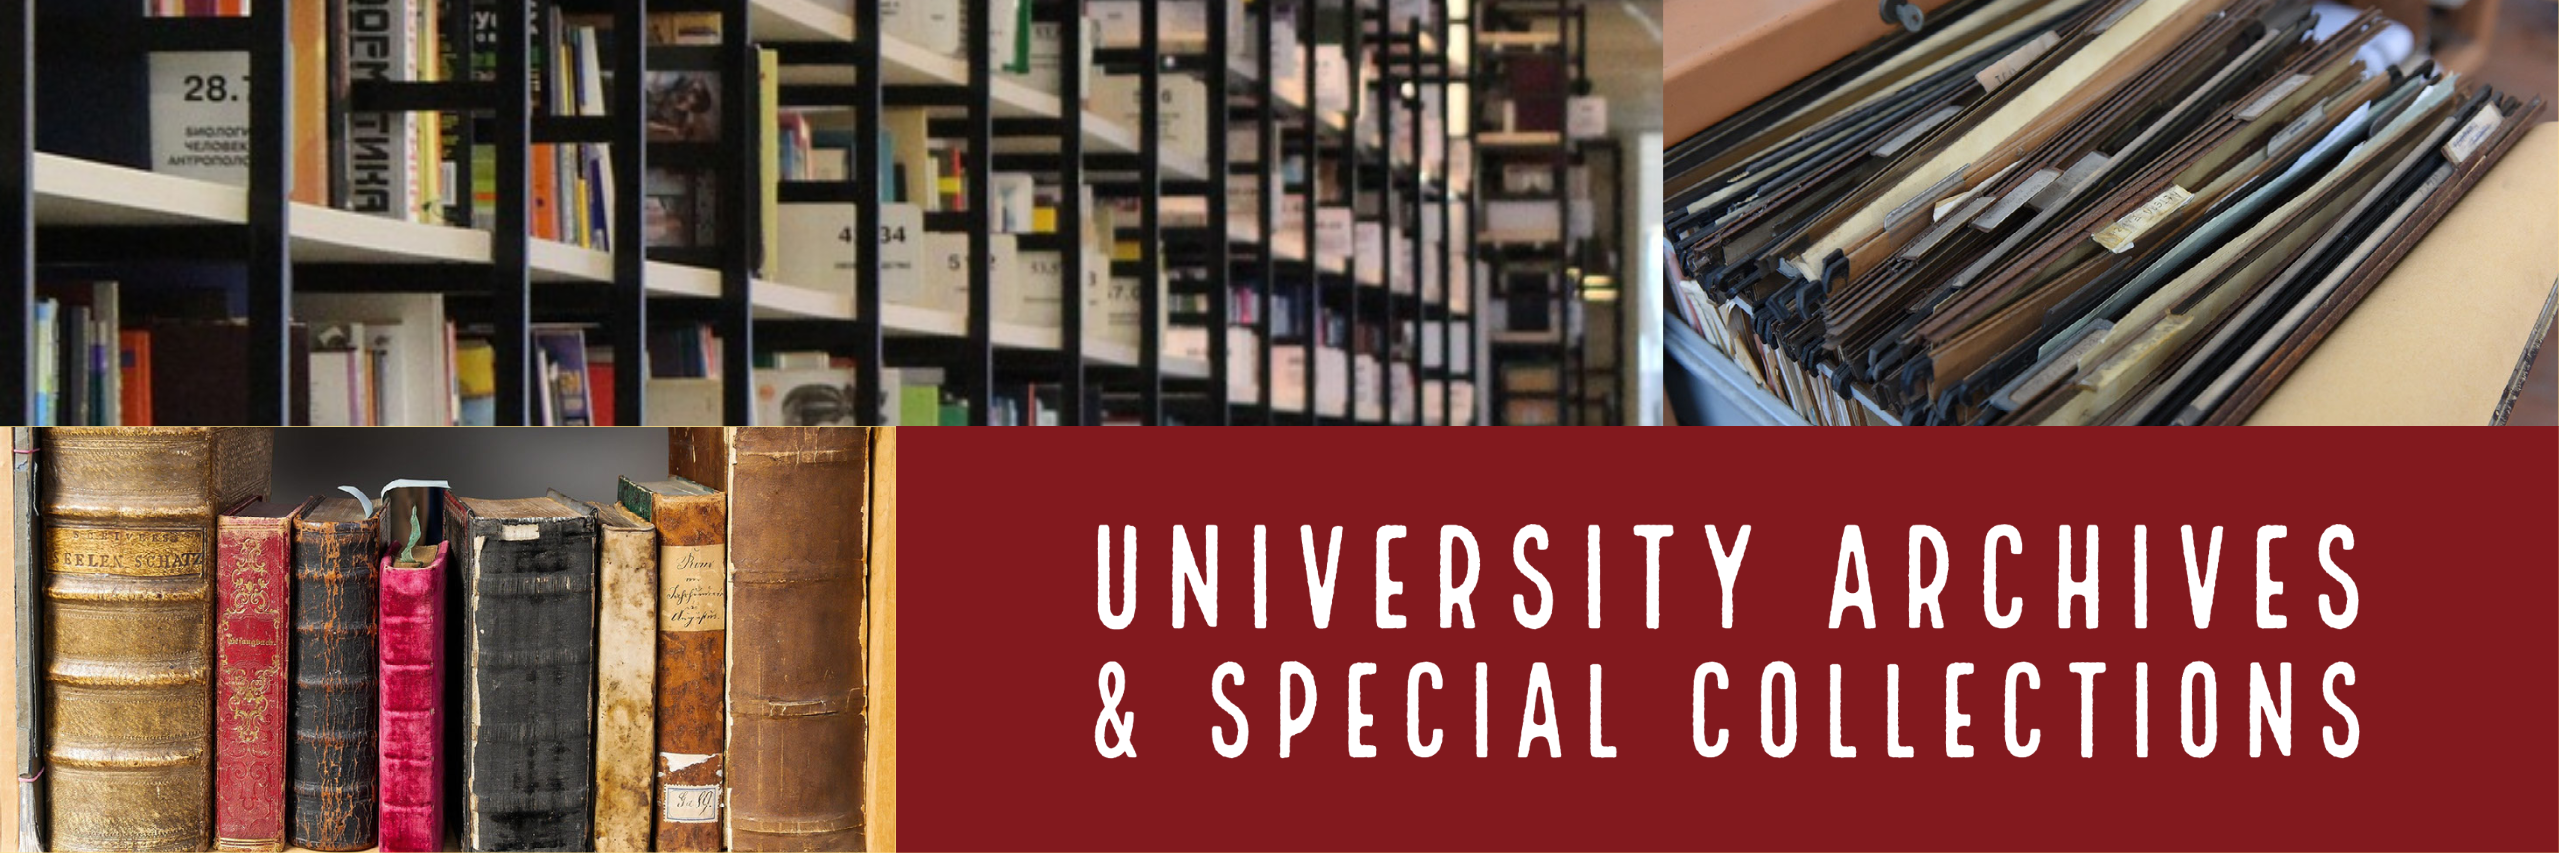 Banner with images of books and archives that says University Archives and Special Collections